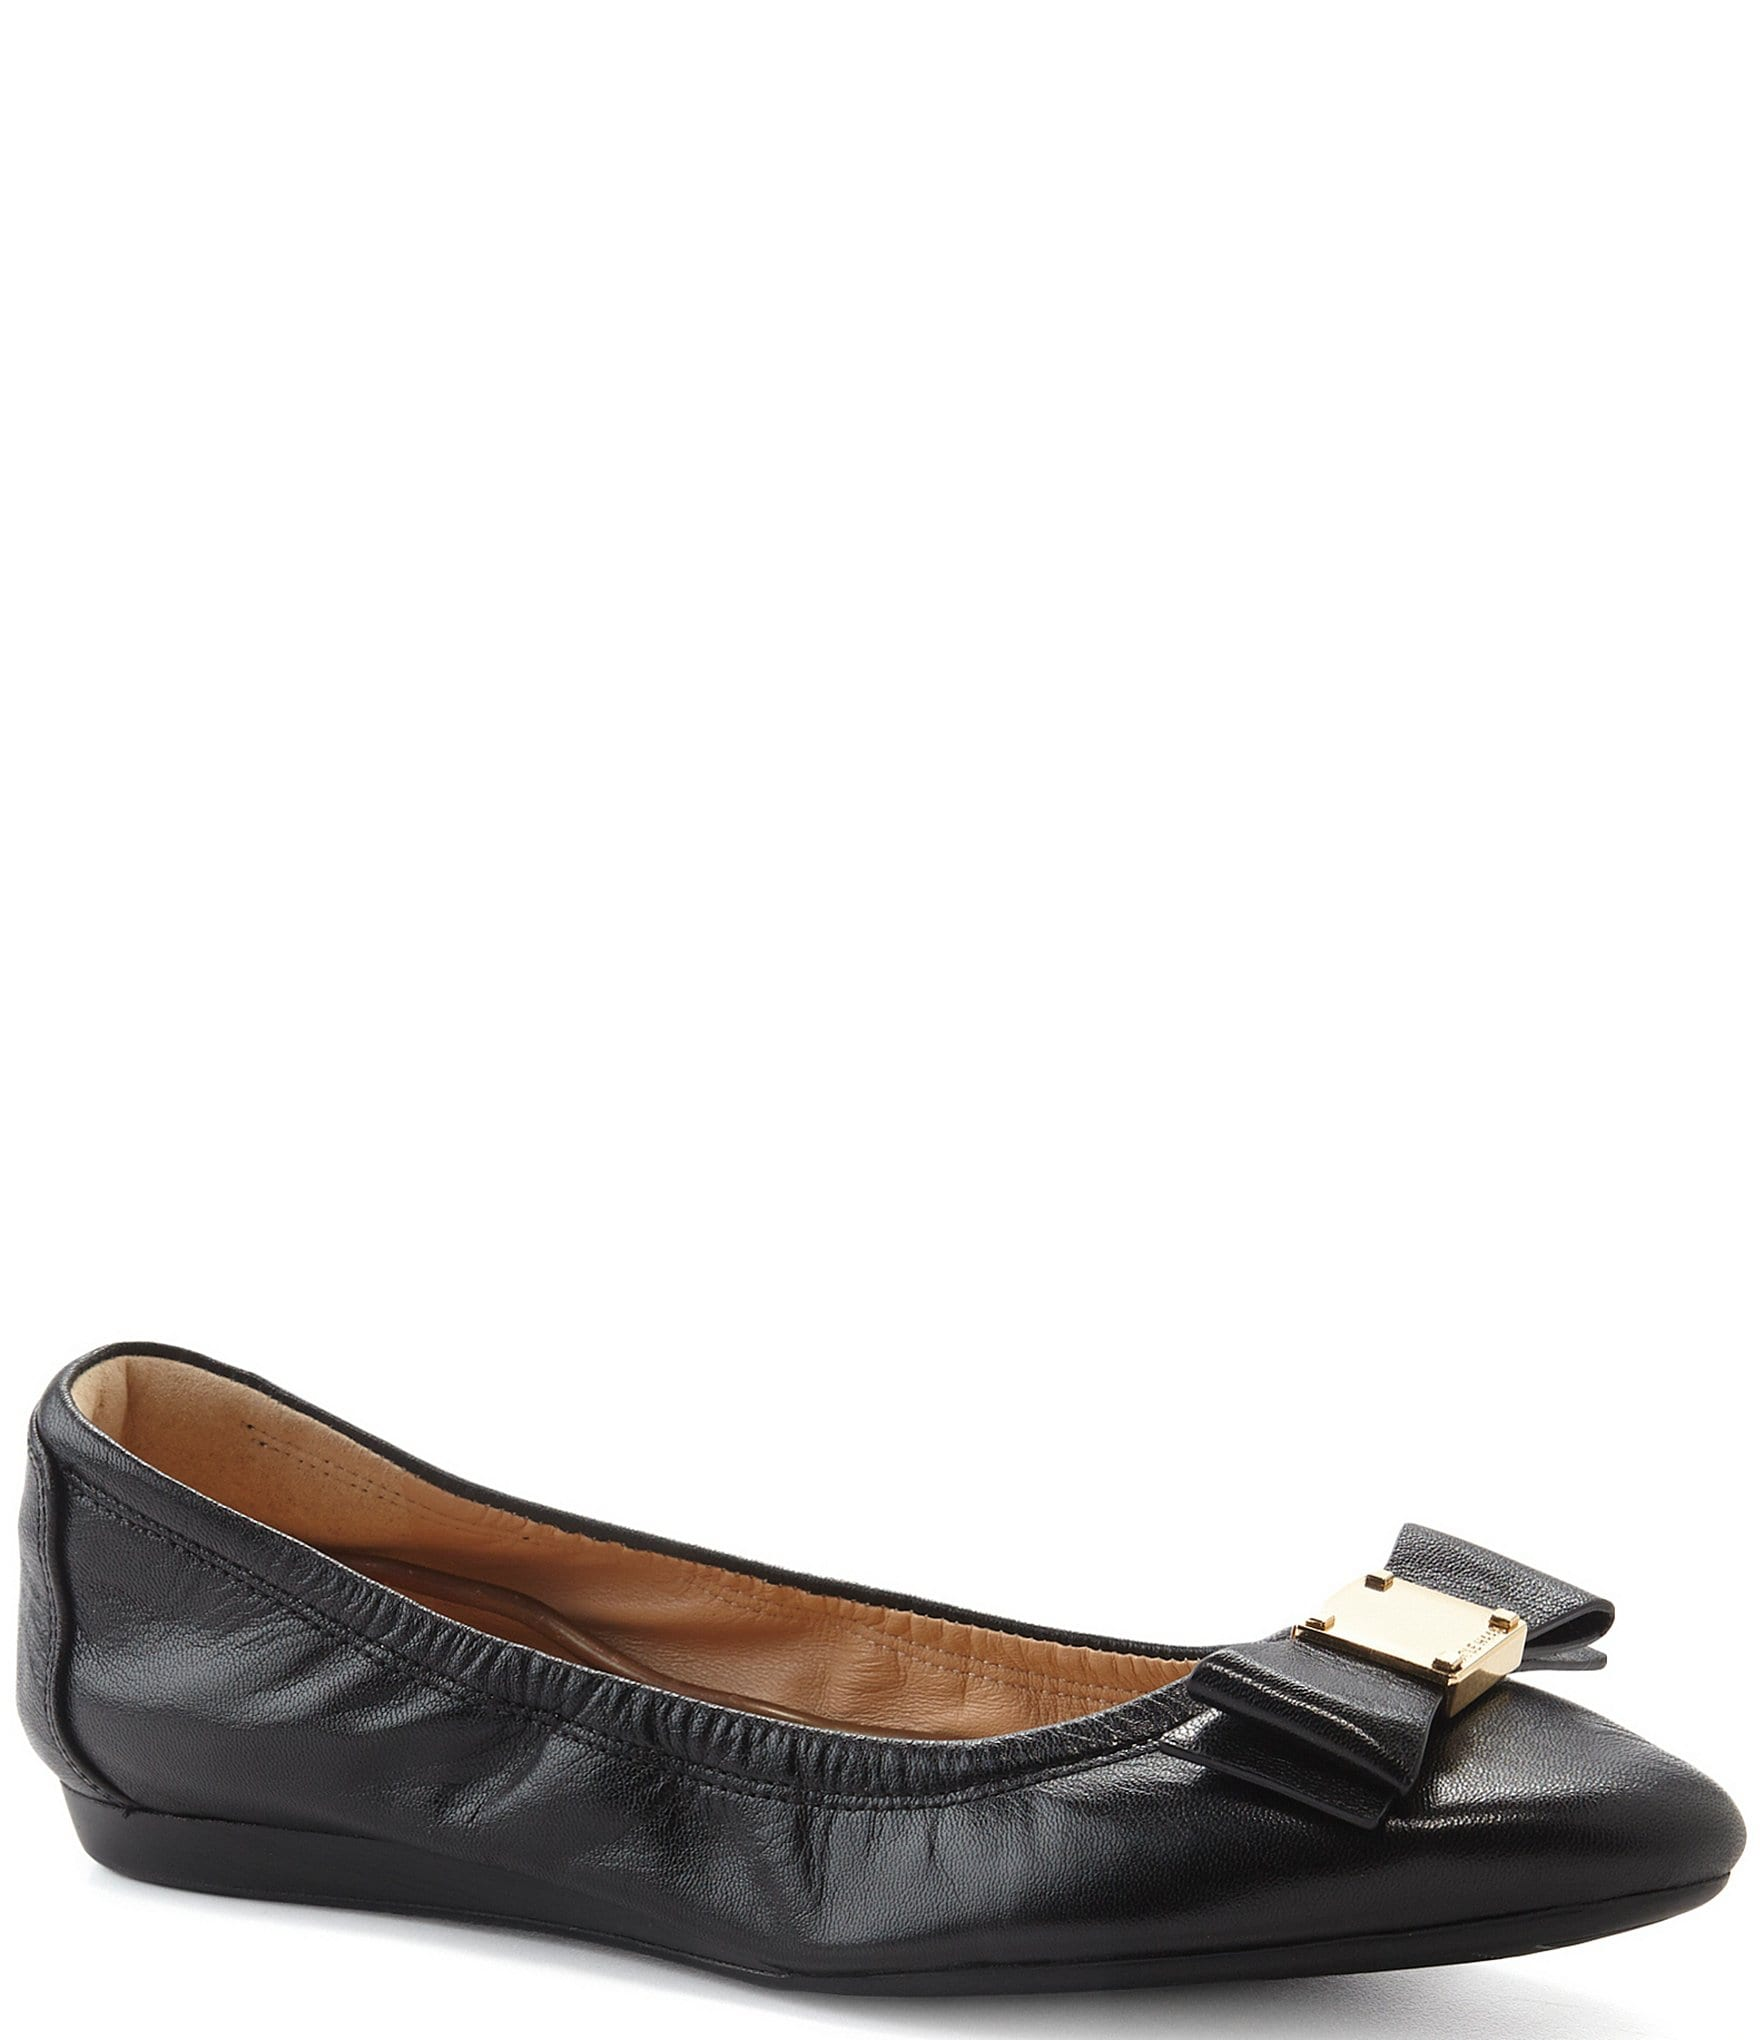 6355fba2db3e Cole Haan Tali Bow Detail Leather Ballet Flats